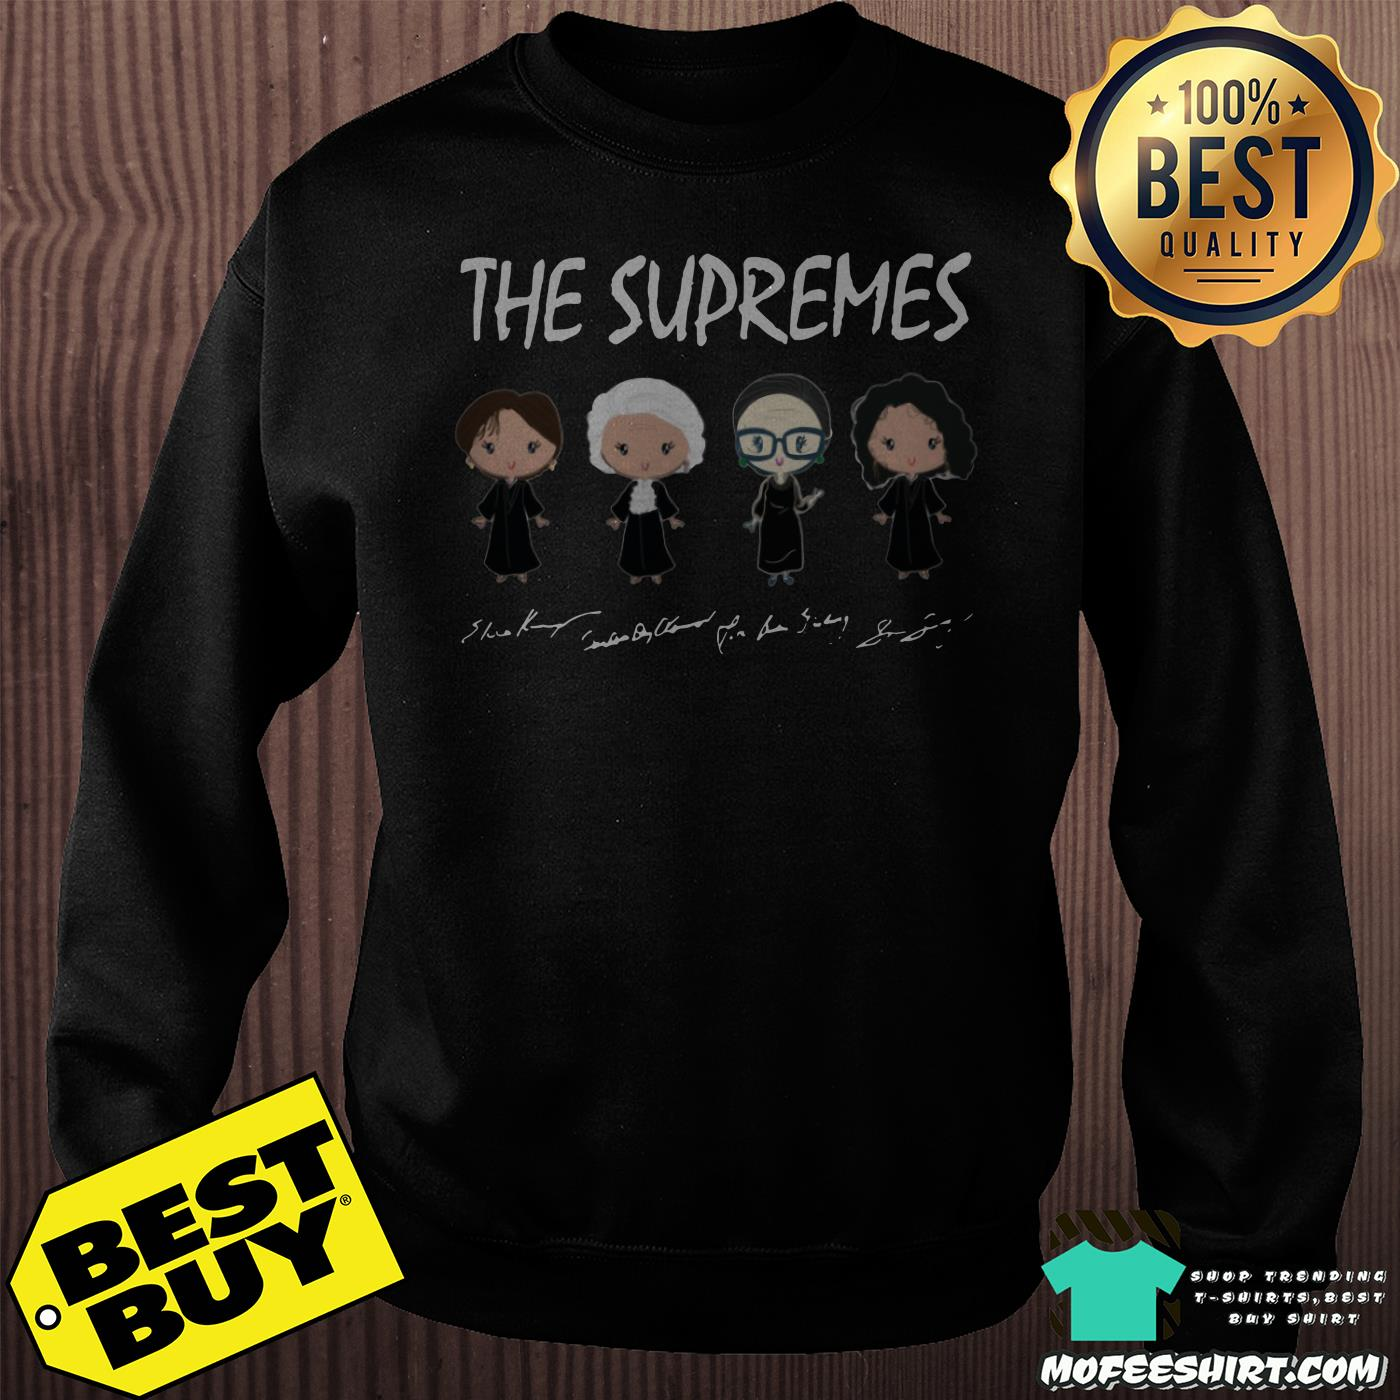 the supremes ruth bader ginsburg signatures sweatshirt - The supremes Ruth Bader Ginsburg signatures shirt